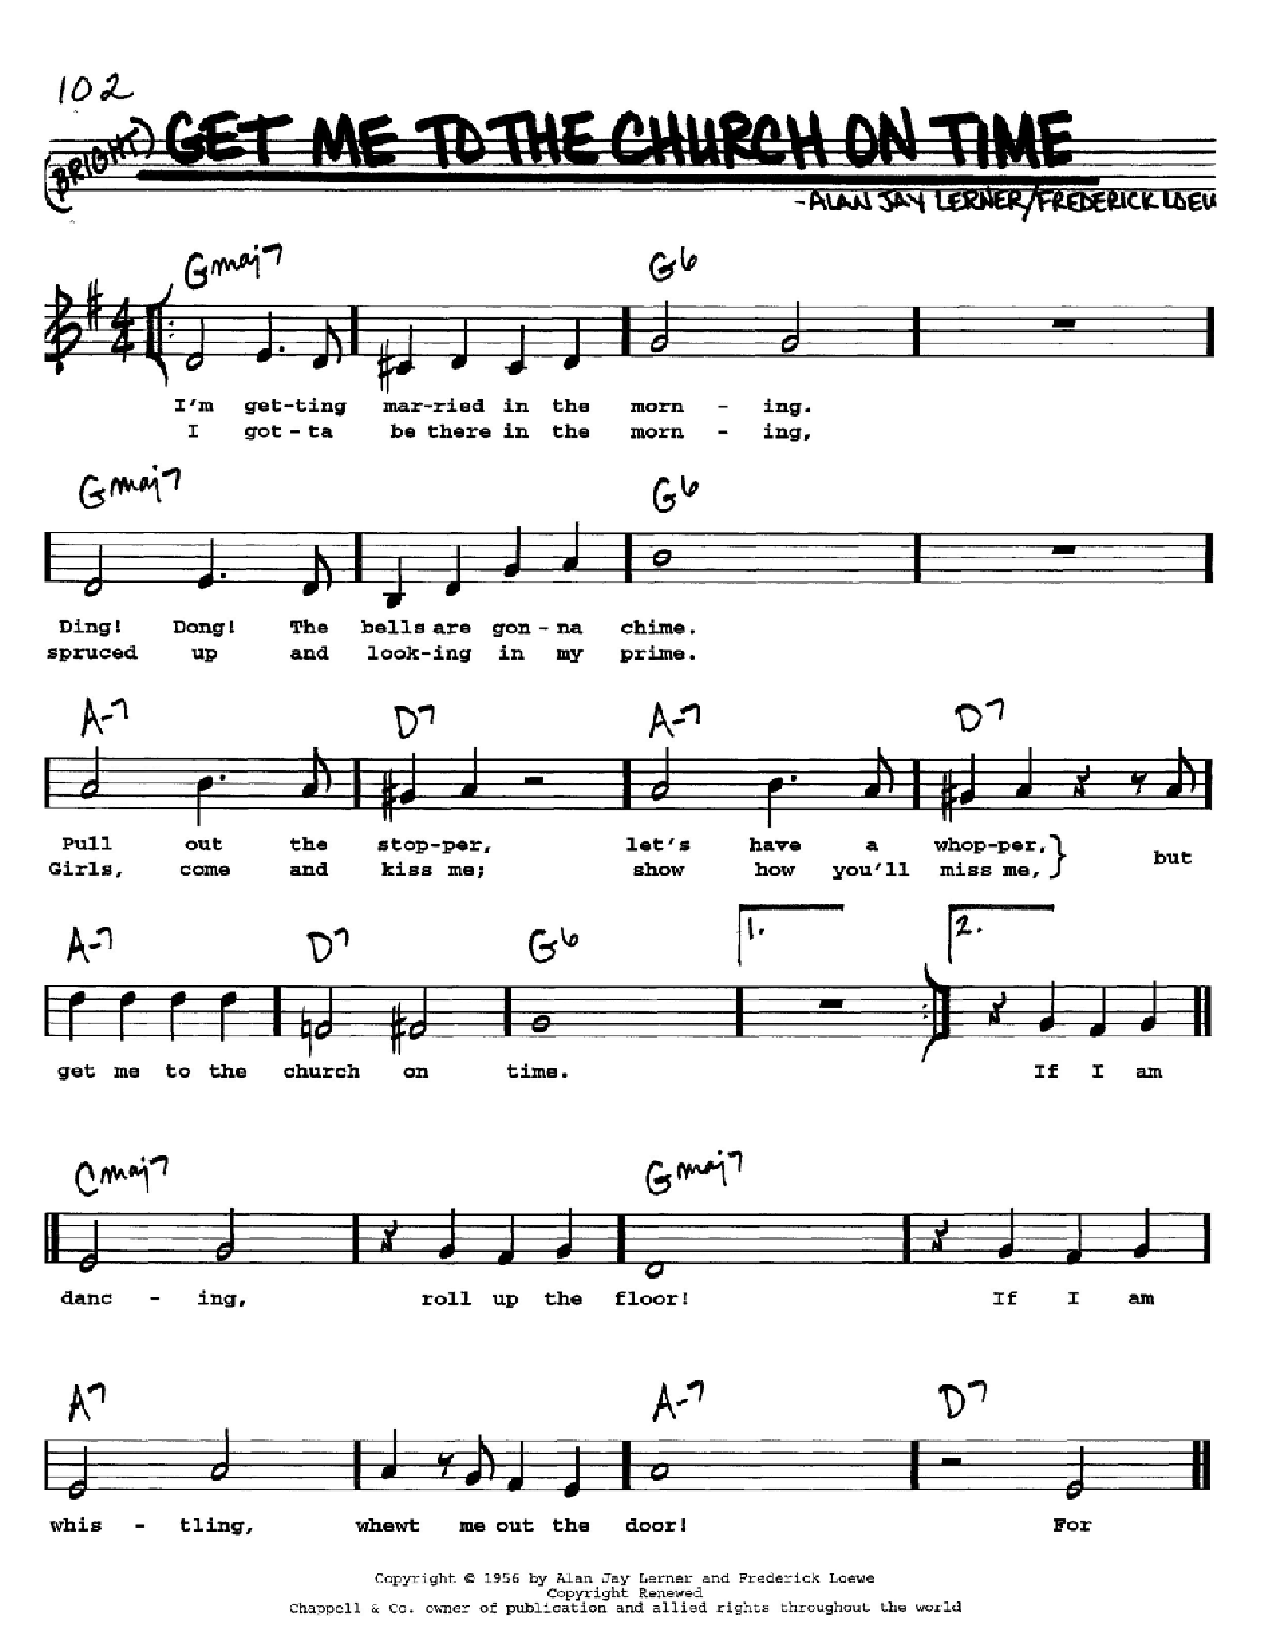 Get Me To The Church On Time (from My Fair Lady) Sheet Music